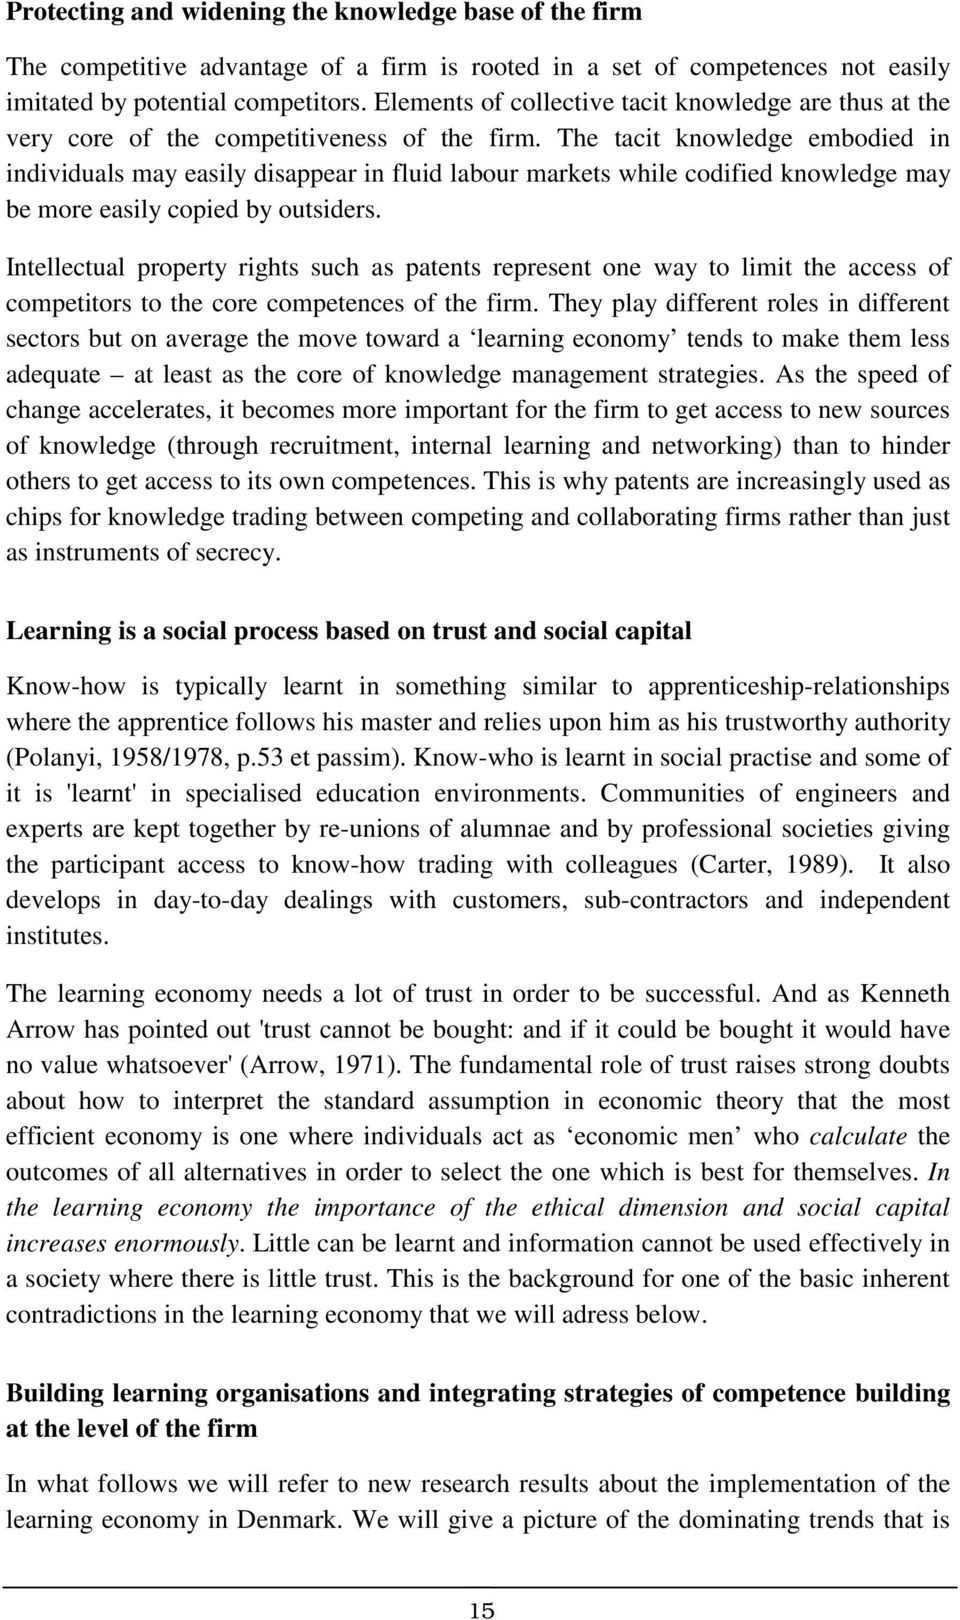 The tacit knowledge embodied in individuals may easily disappear in fluid labour markets while codified knowledge may be more easily copied by outsiders.